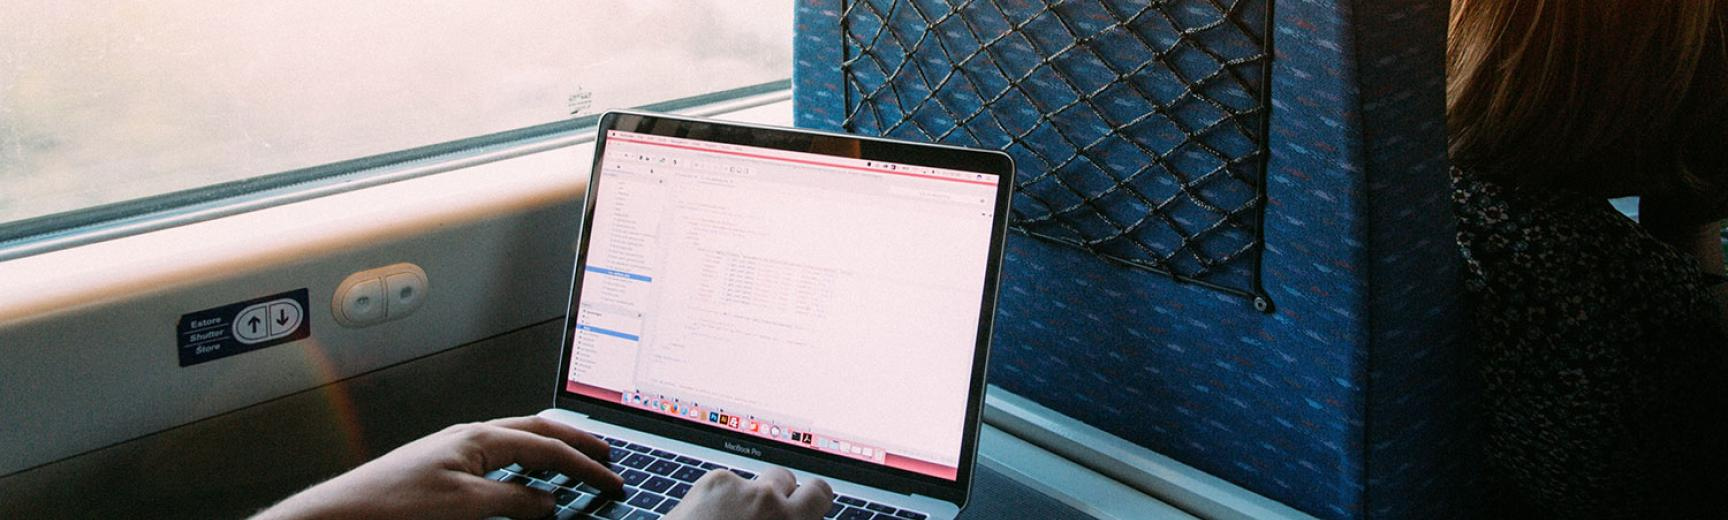 A student working on a laptop on the train